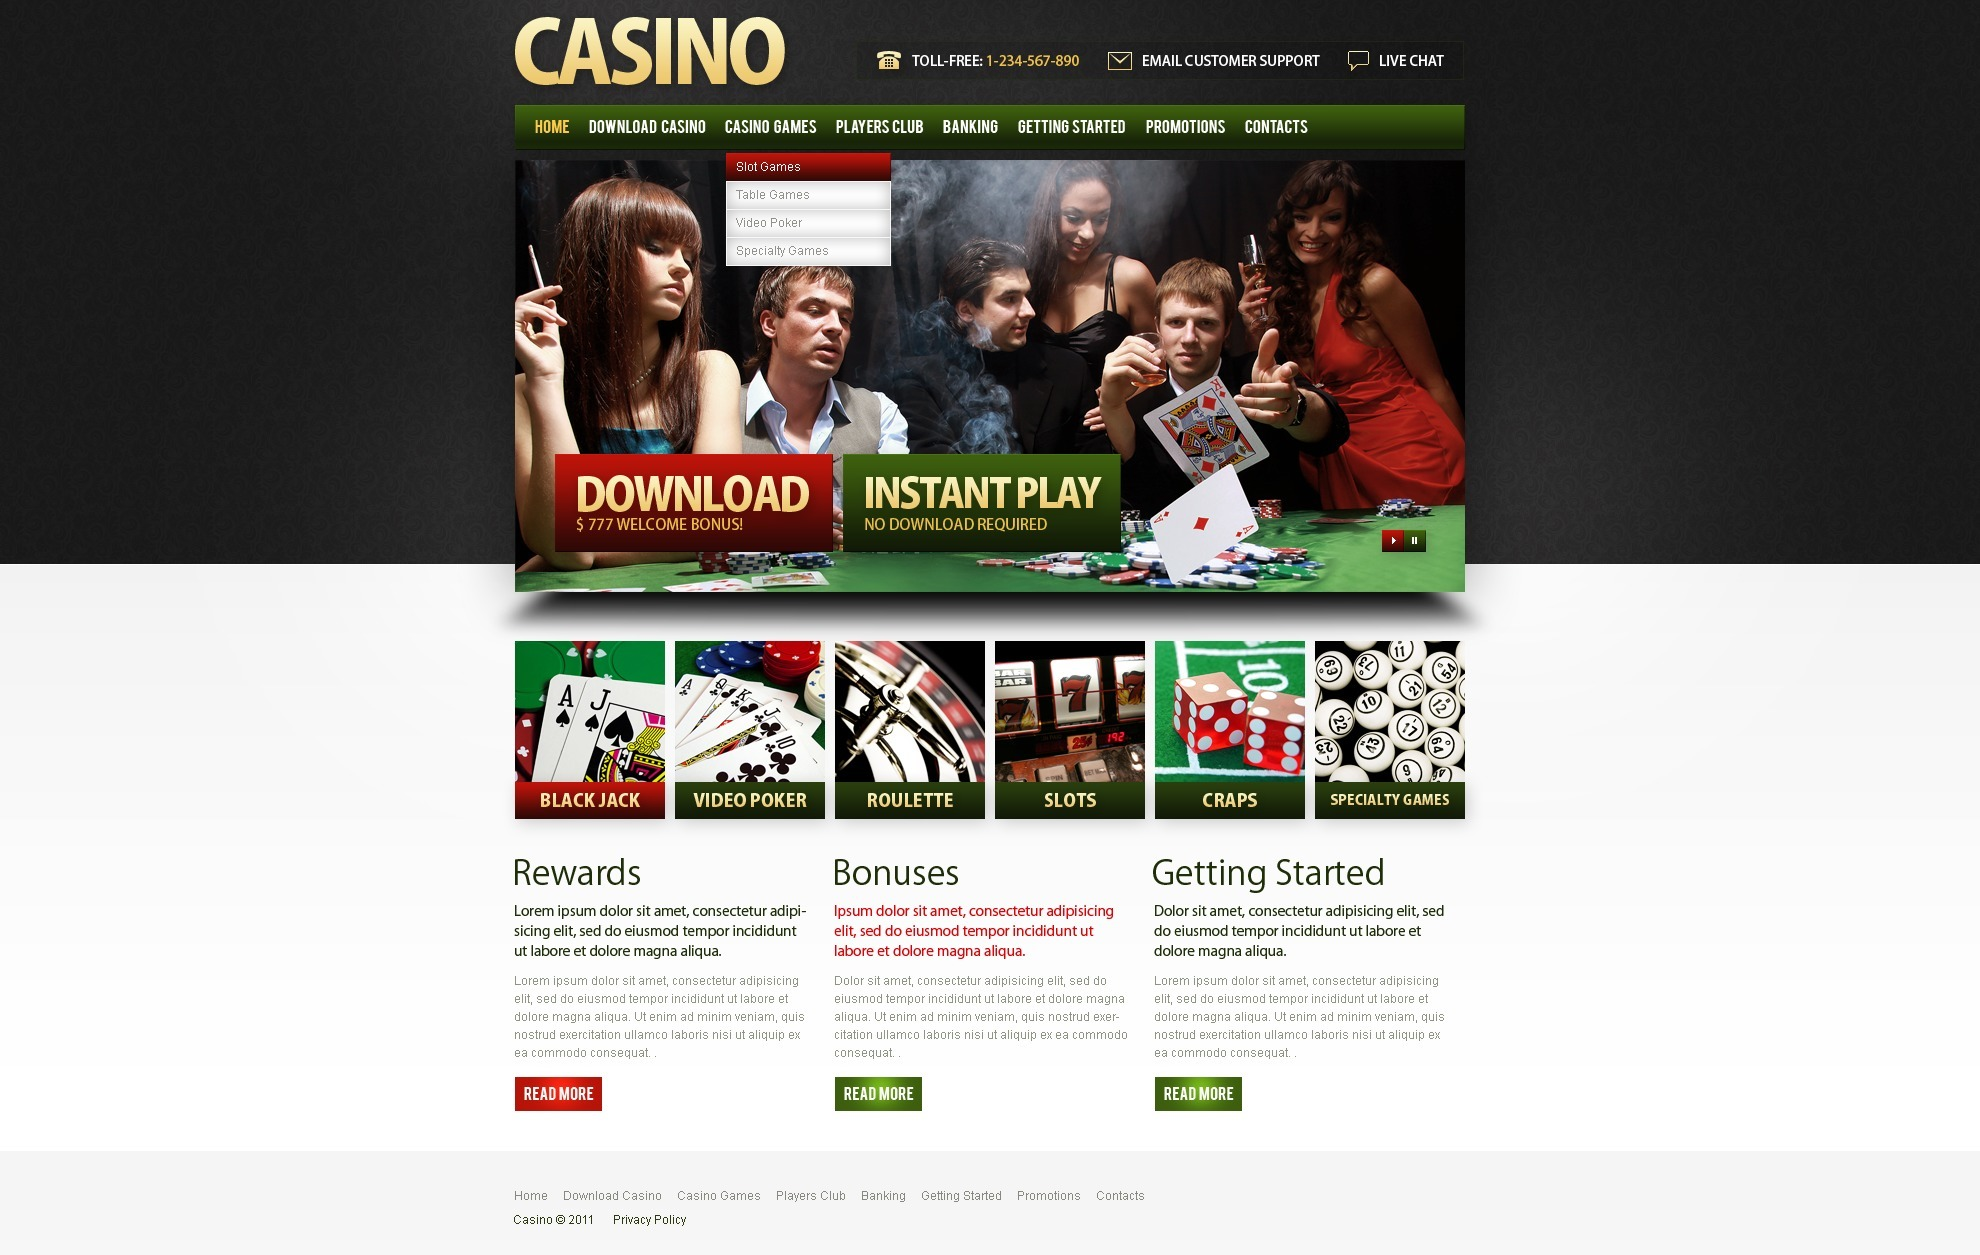 casino features